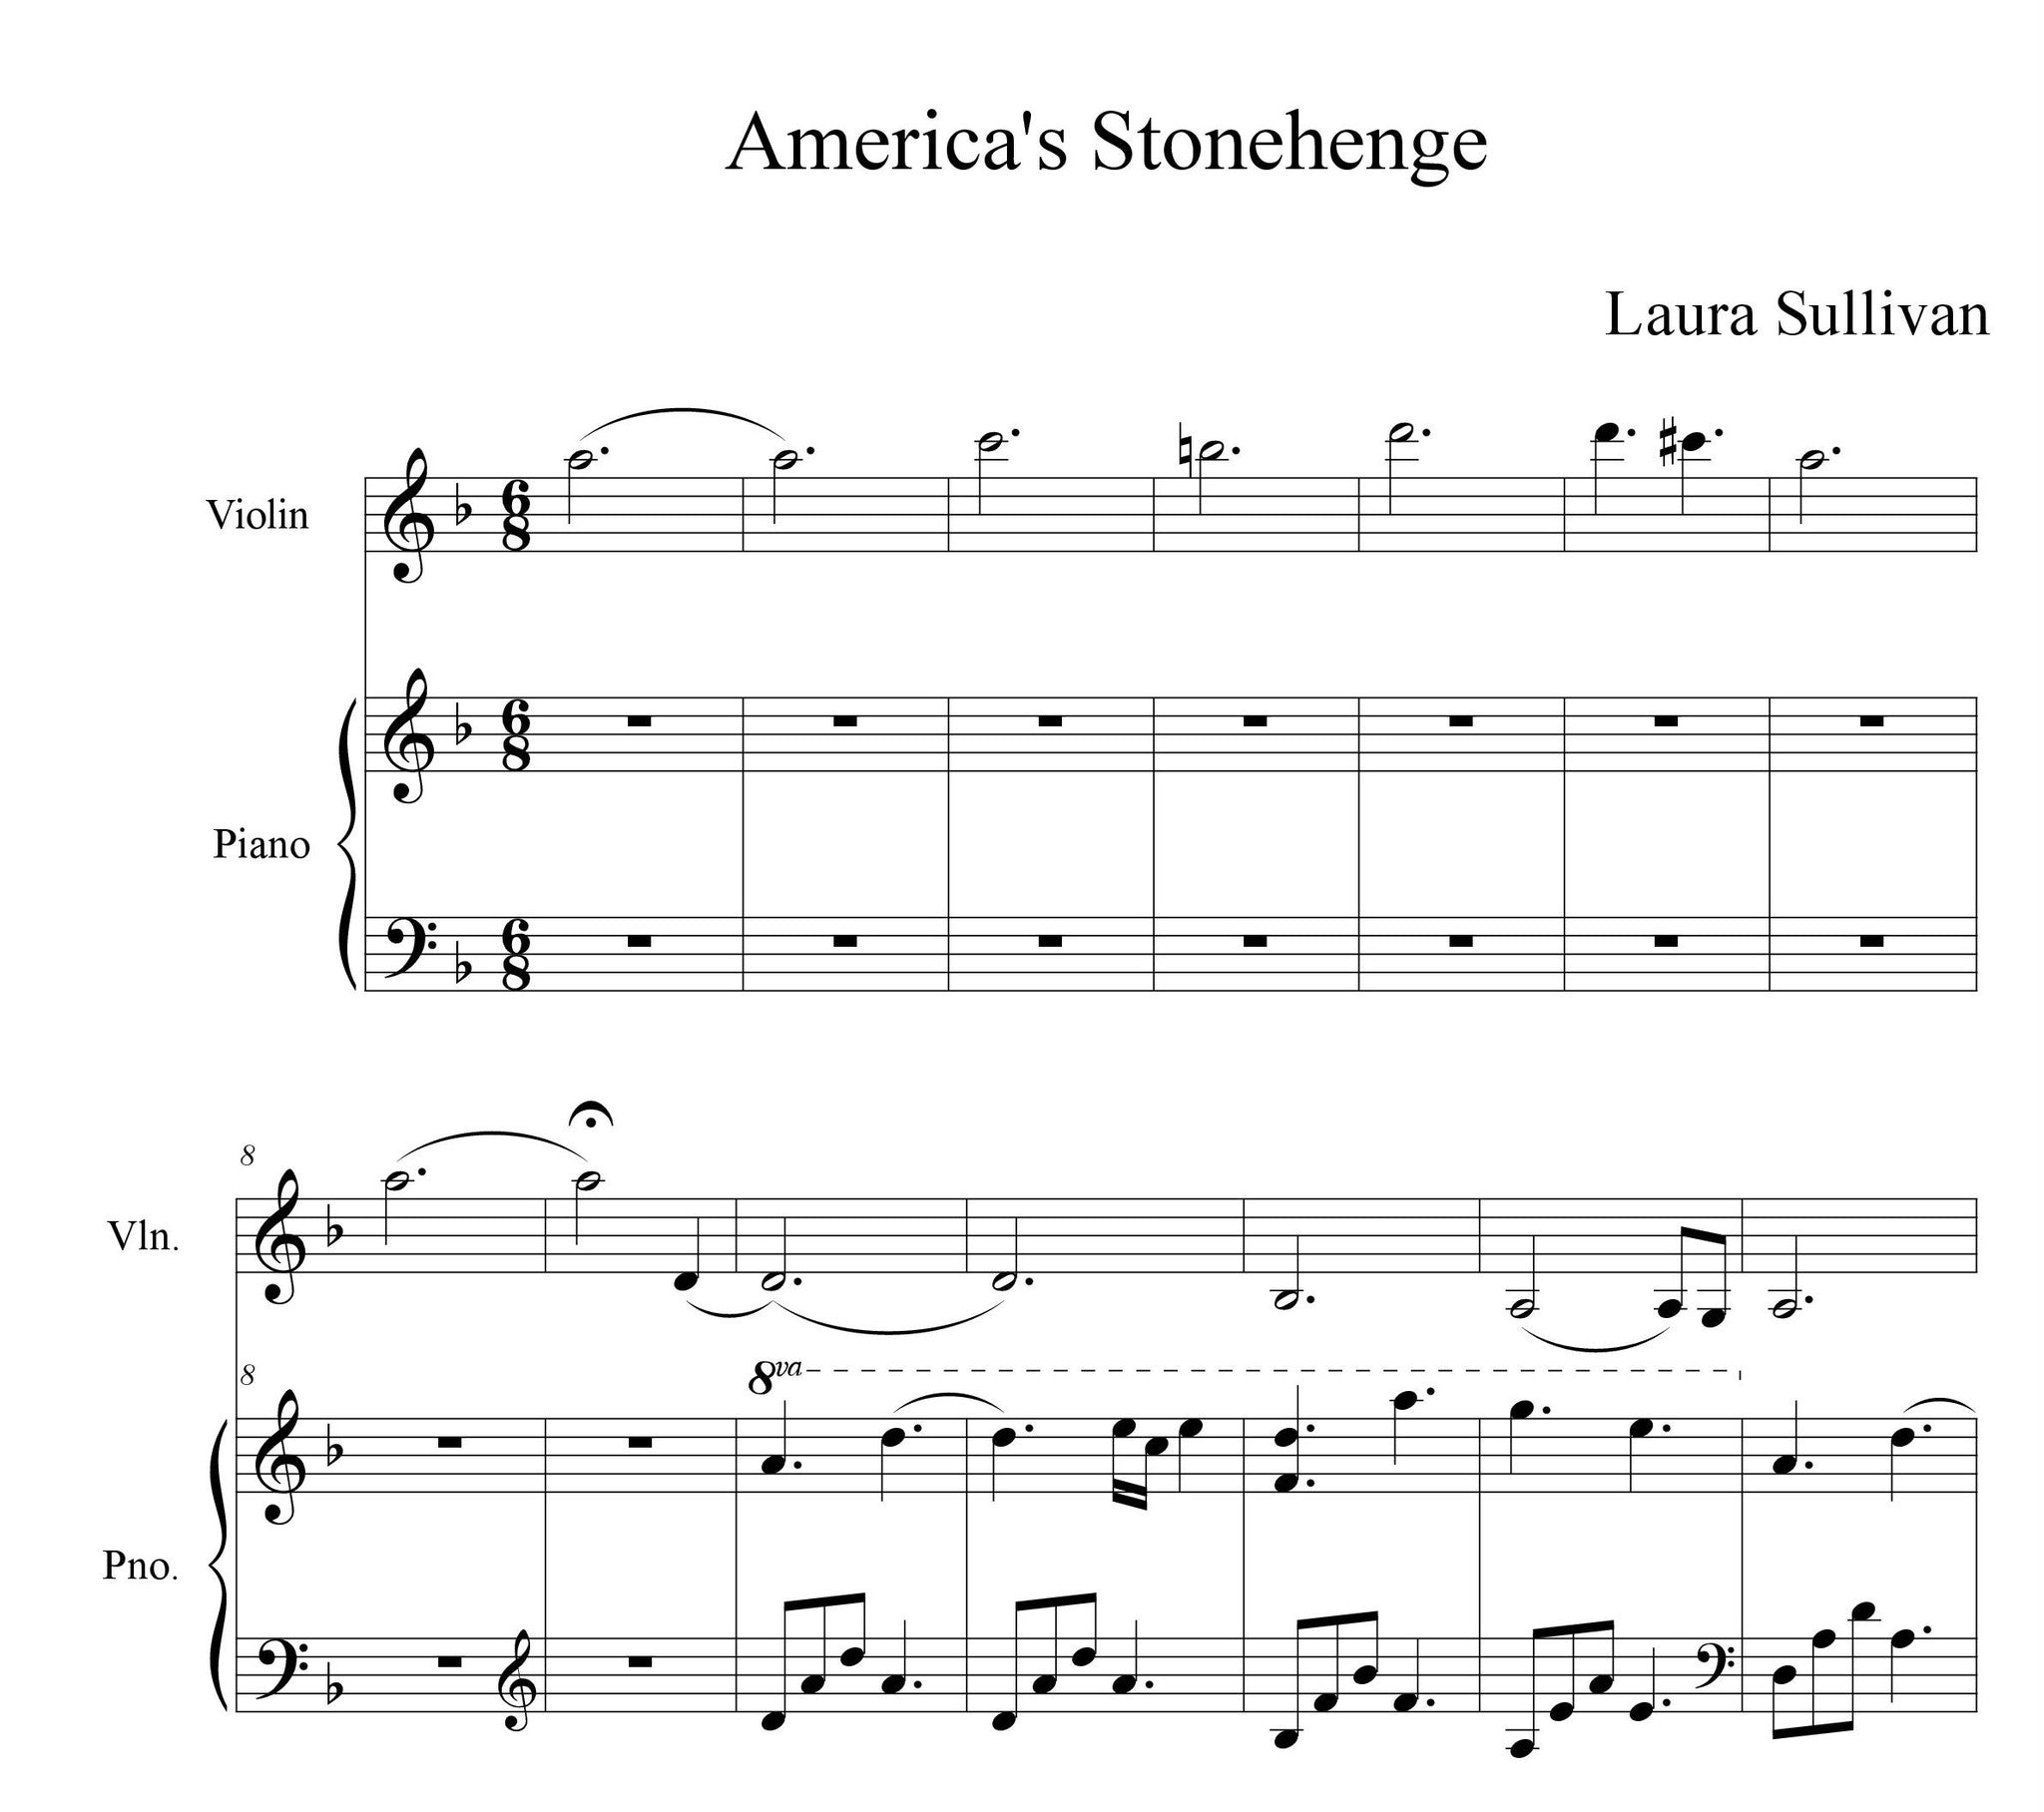 Sheet Music - Laura Sullivan